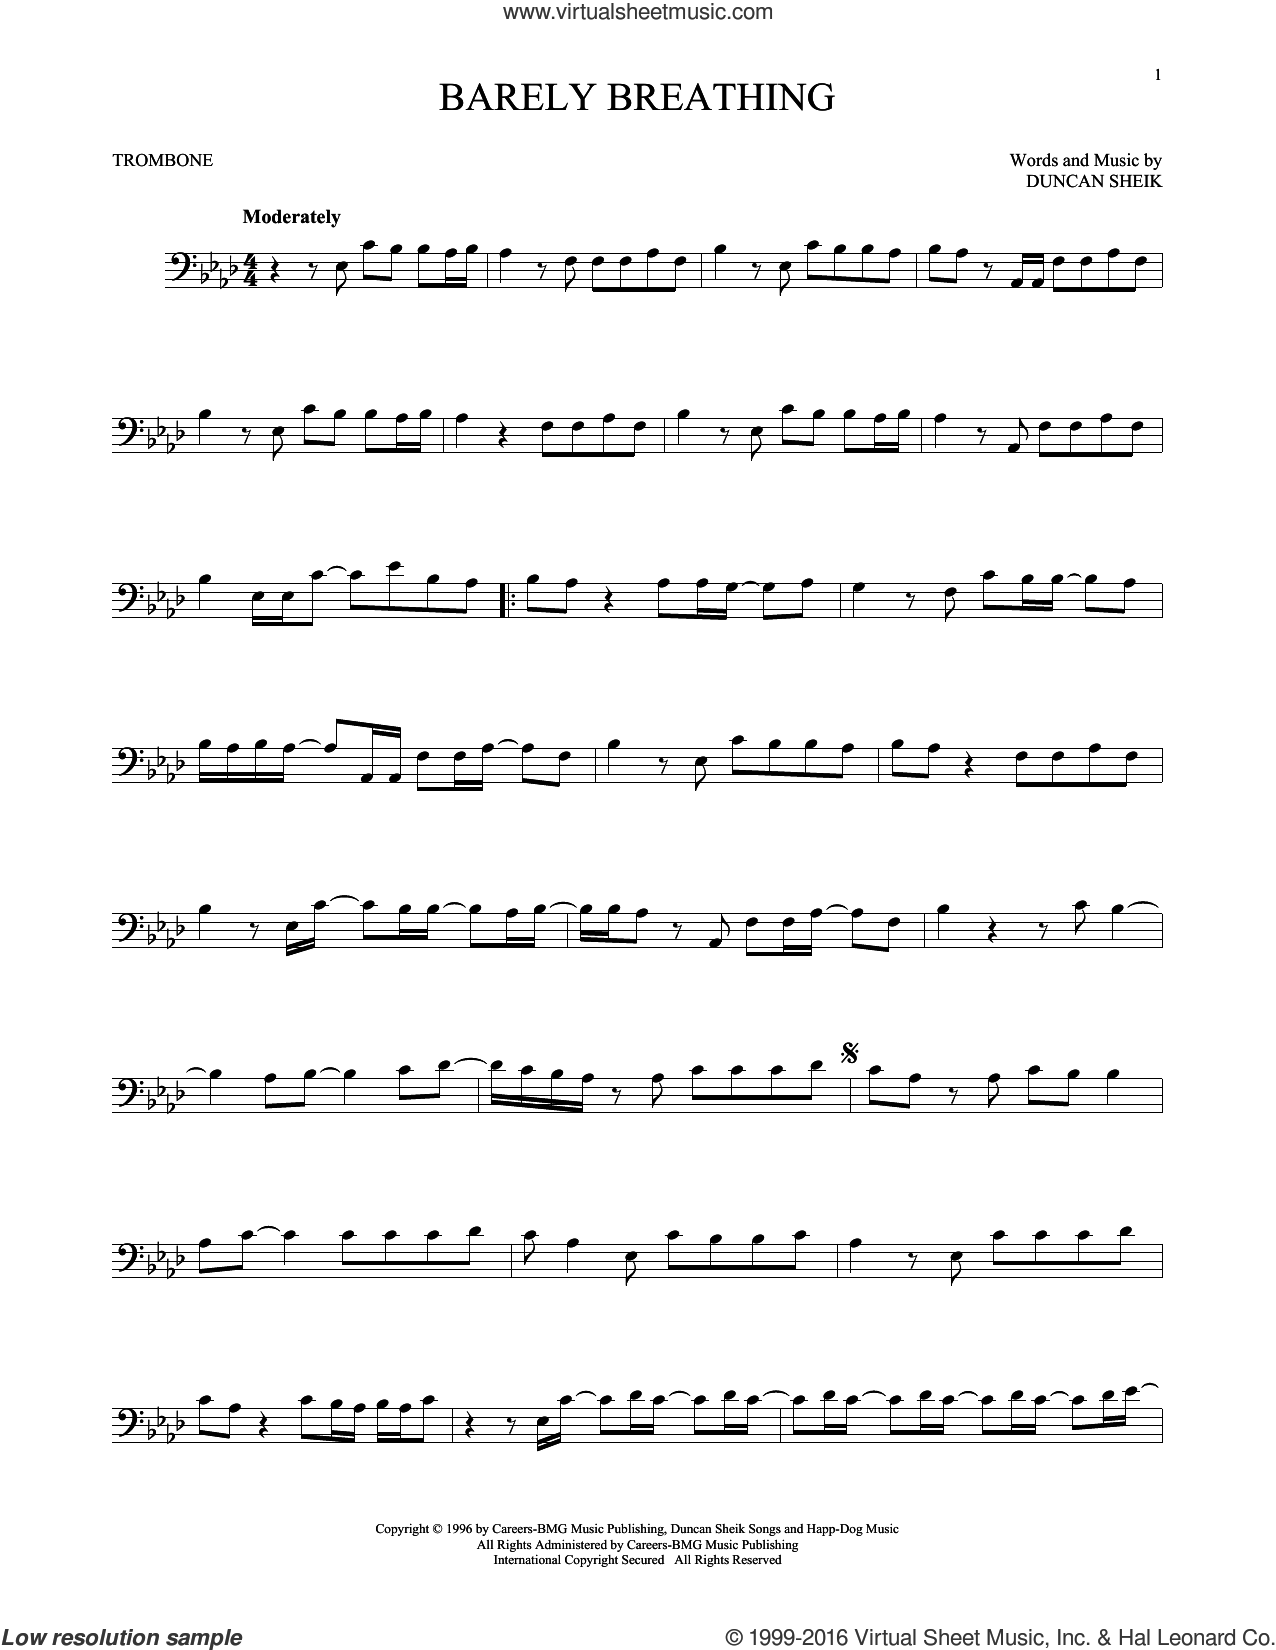 Barely Breathing sheet music for trombone solo by Duncan Sheik, intermediate. Score Image Preview.